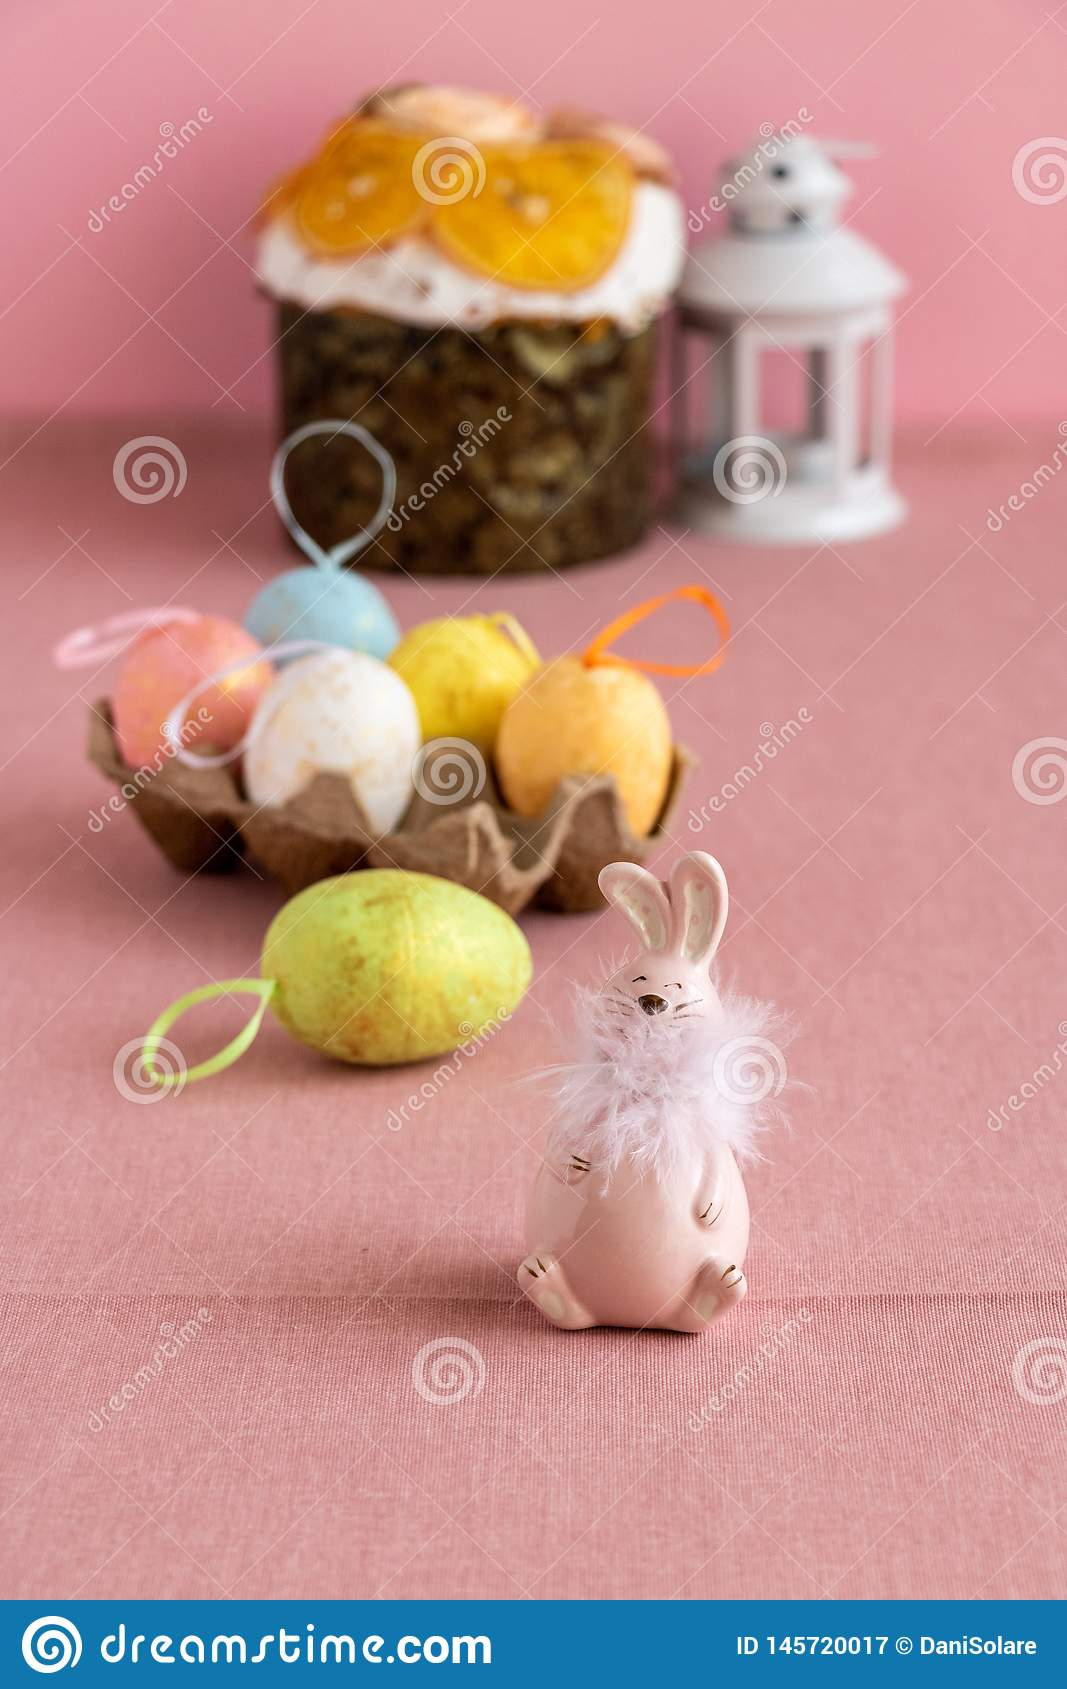 Easter decor with colorful eggs, Easter cake and a pink bunny.